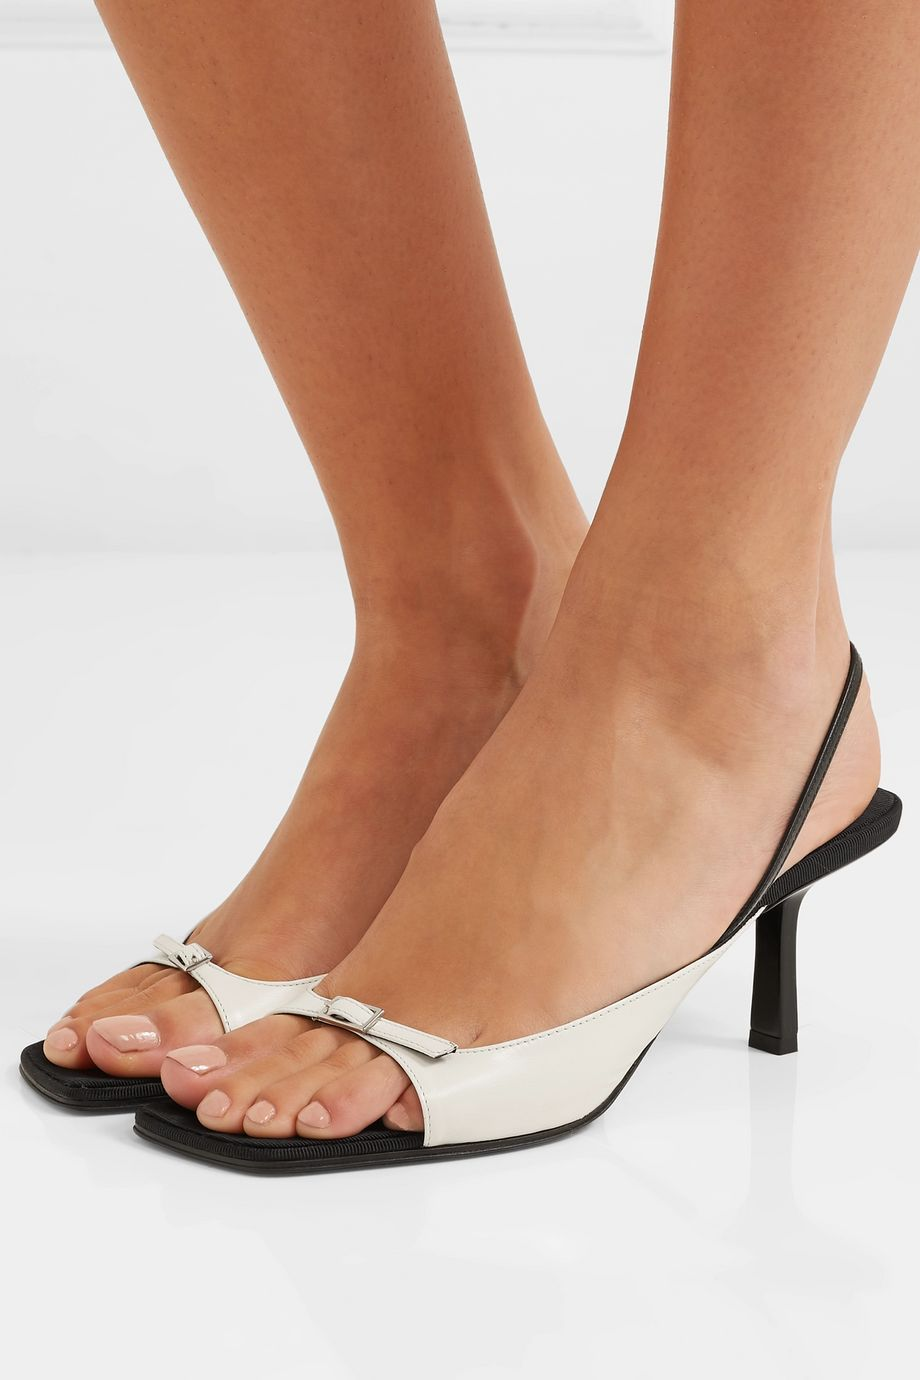 The Row Two-tone leather slingback sandals